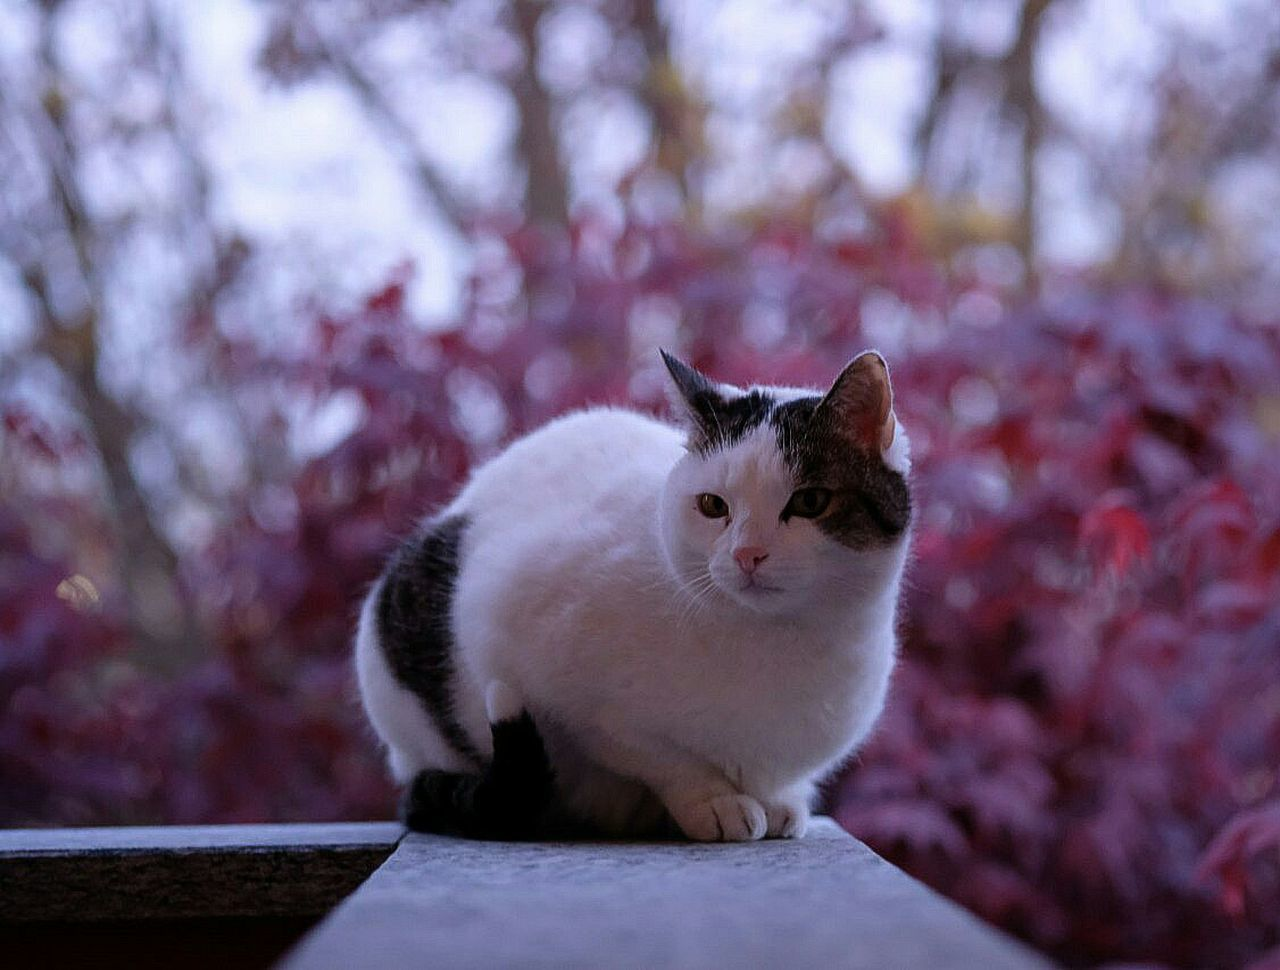 domestic cat, pets, feline, sitting, domestic animals, one animal, mammal, no people, animal themes, portrait, nature, outdoors, day